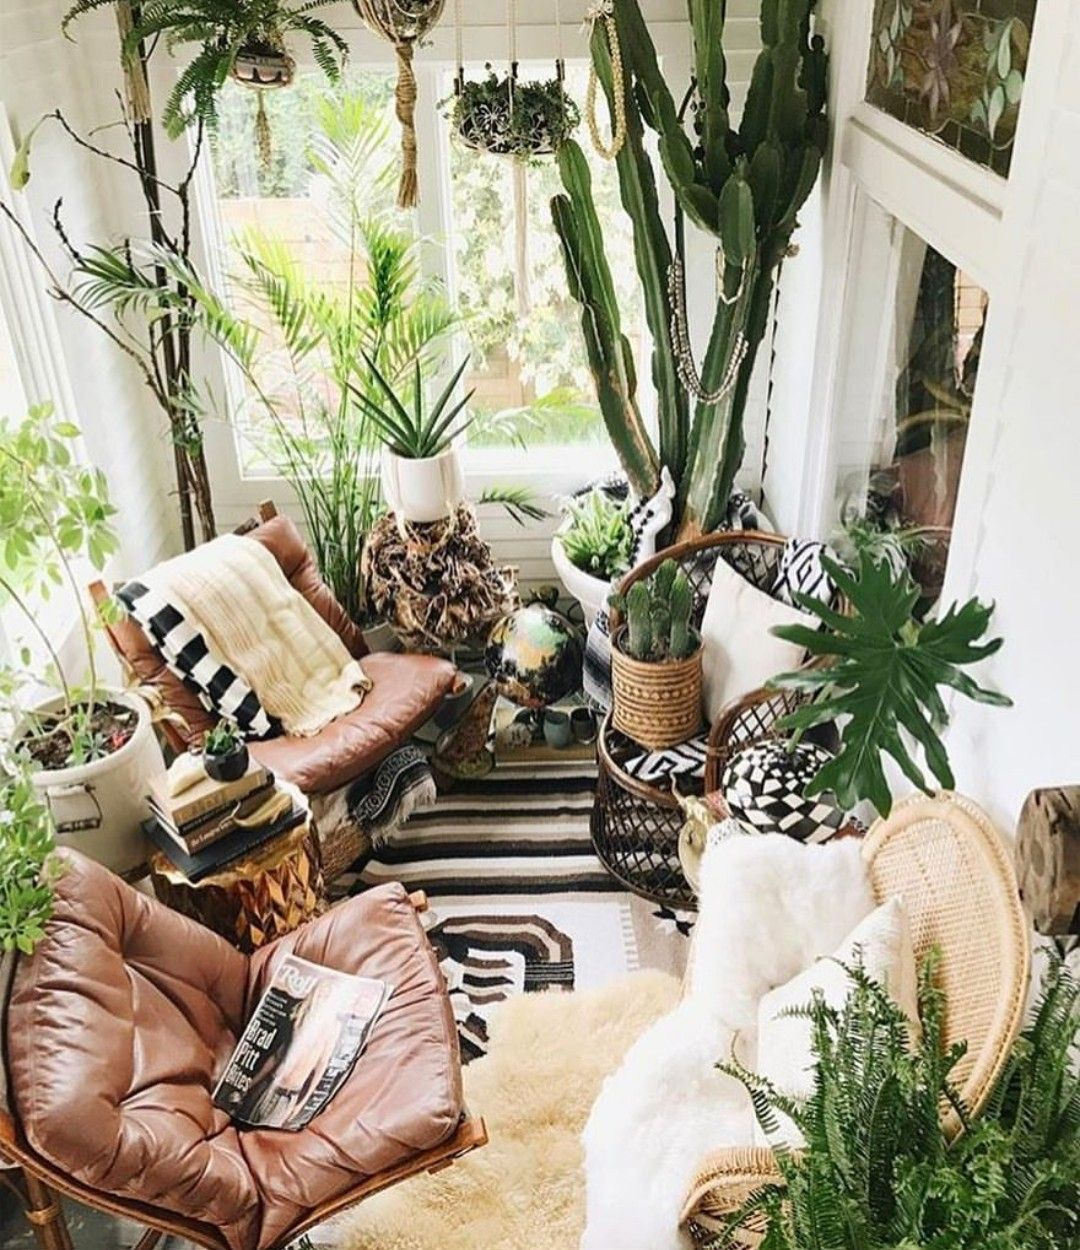 Pin by Anoria.lg on HOME / DECORATION | Pinterest | Houseplants ...